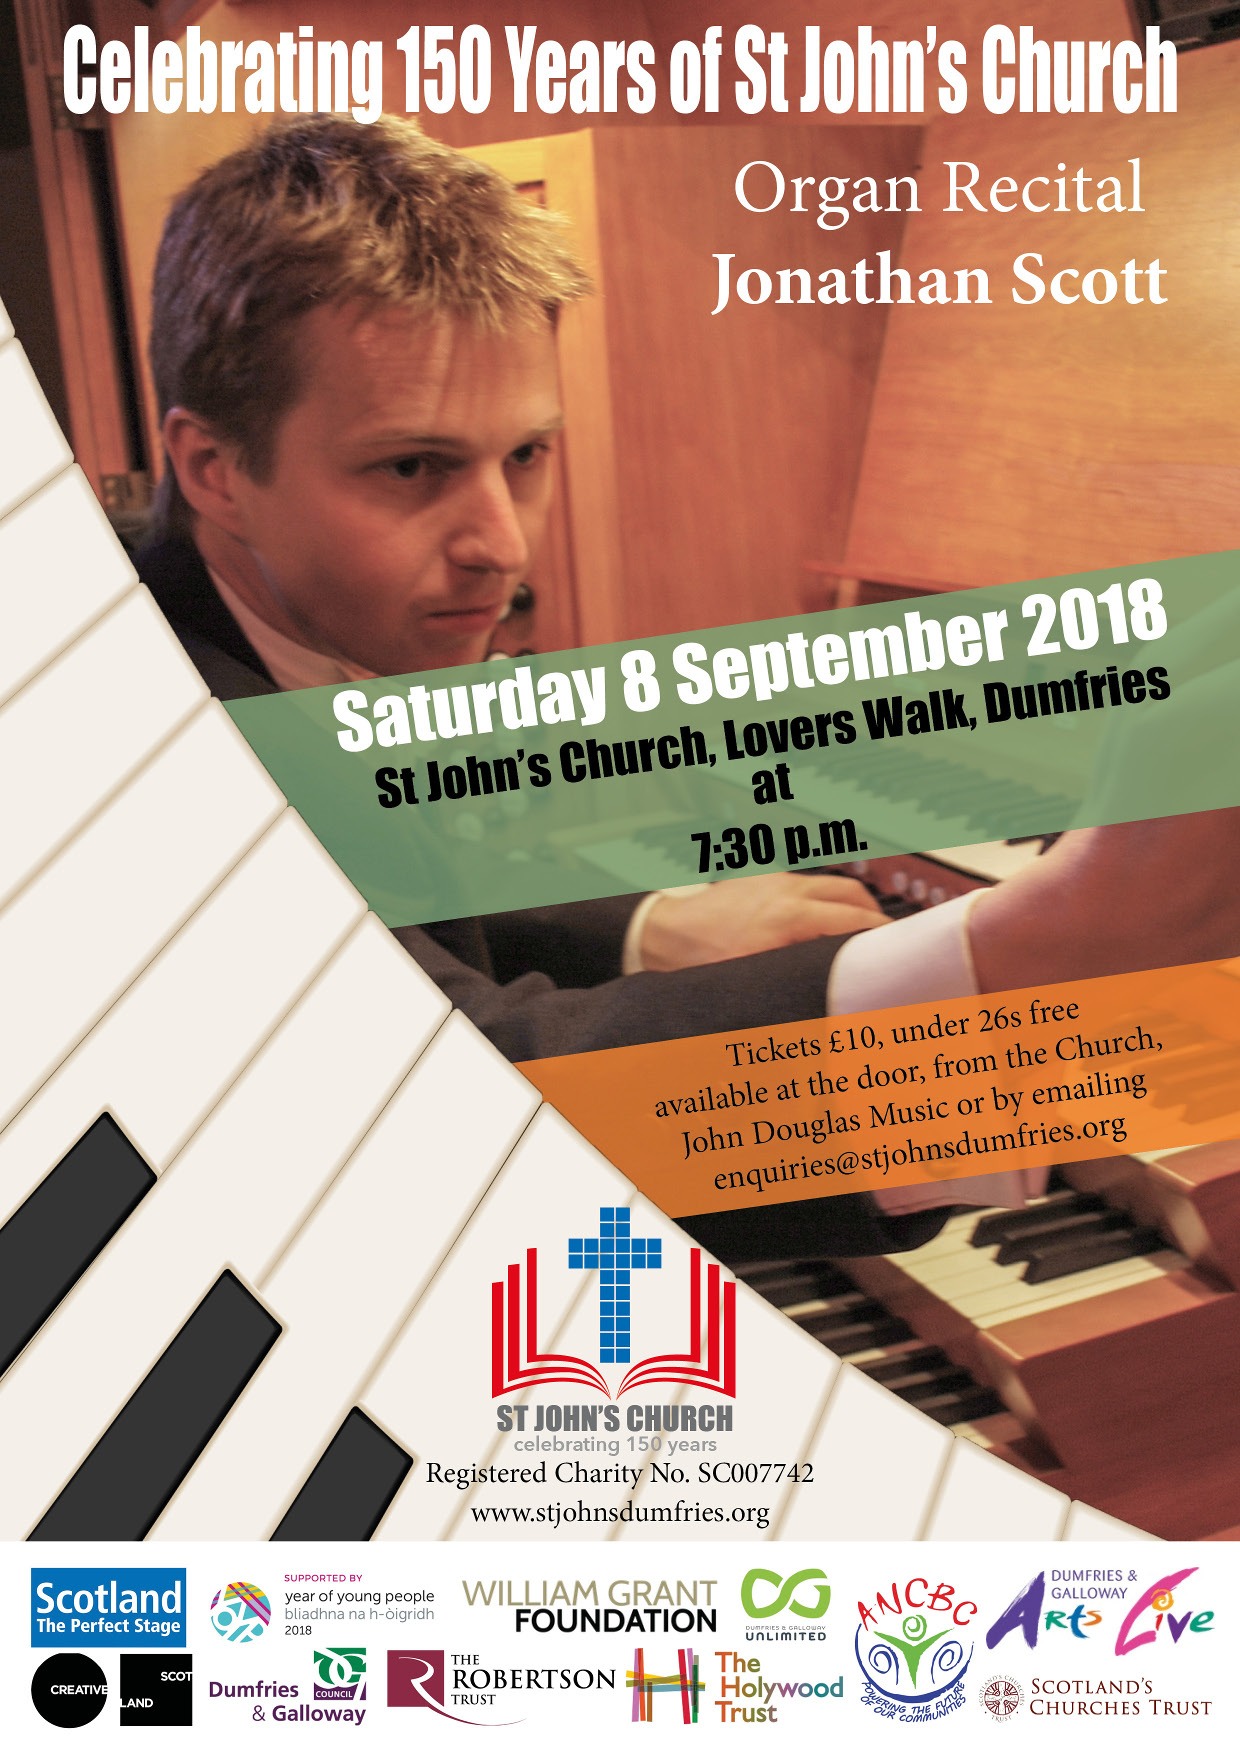 Organ Concert in St John's, 8th September at 7.30 pm